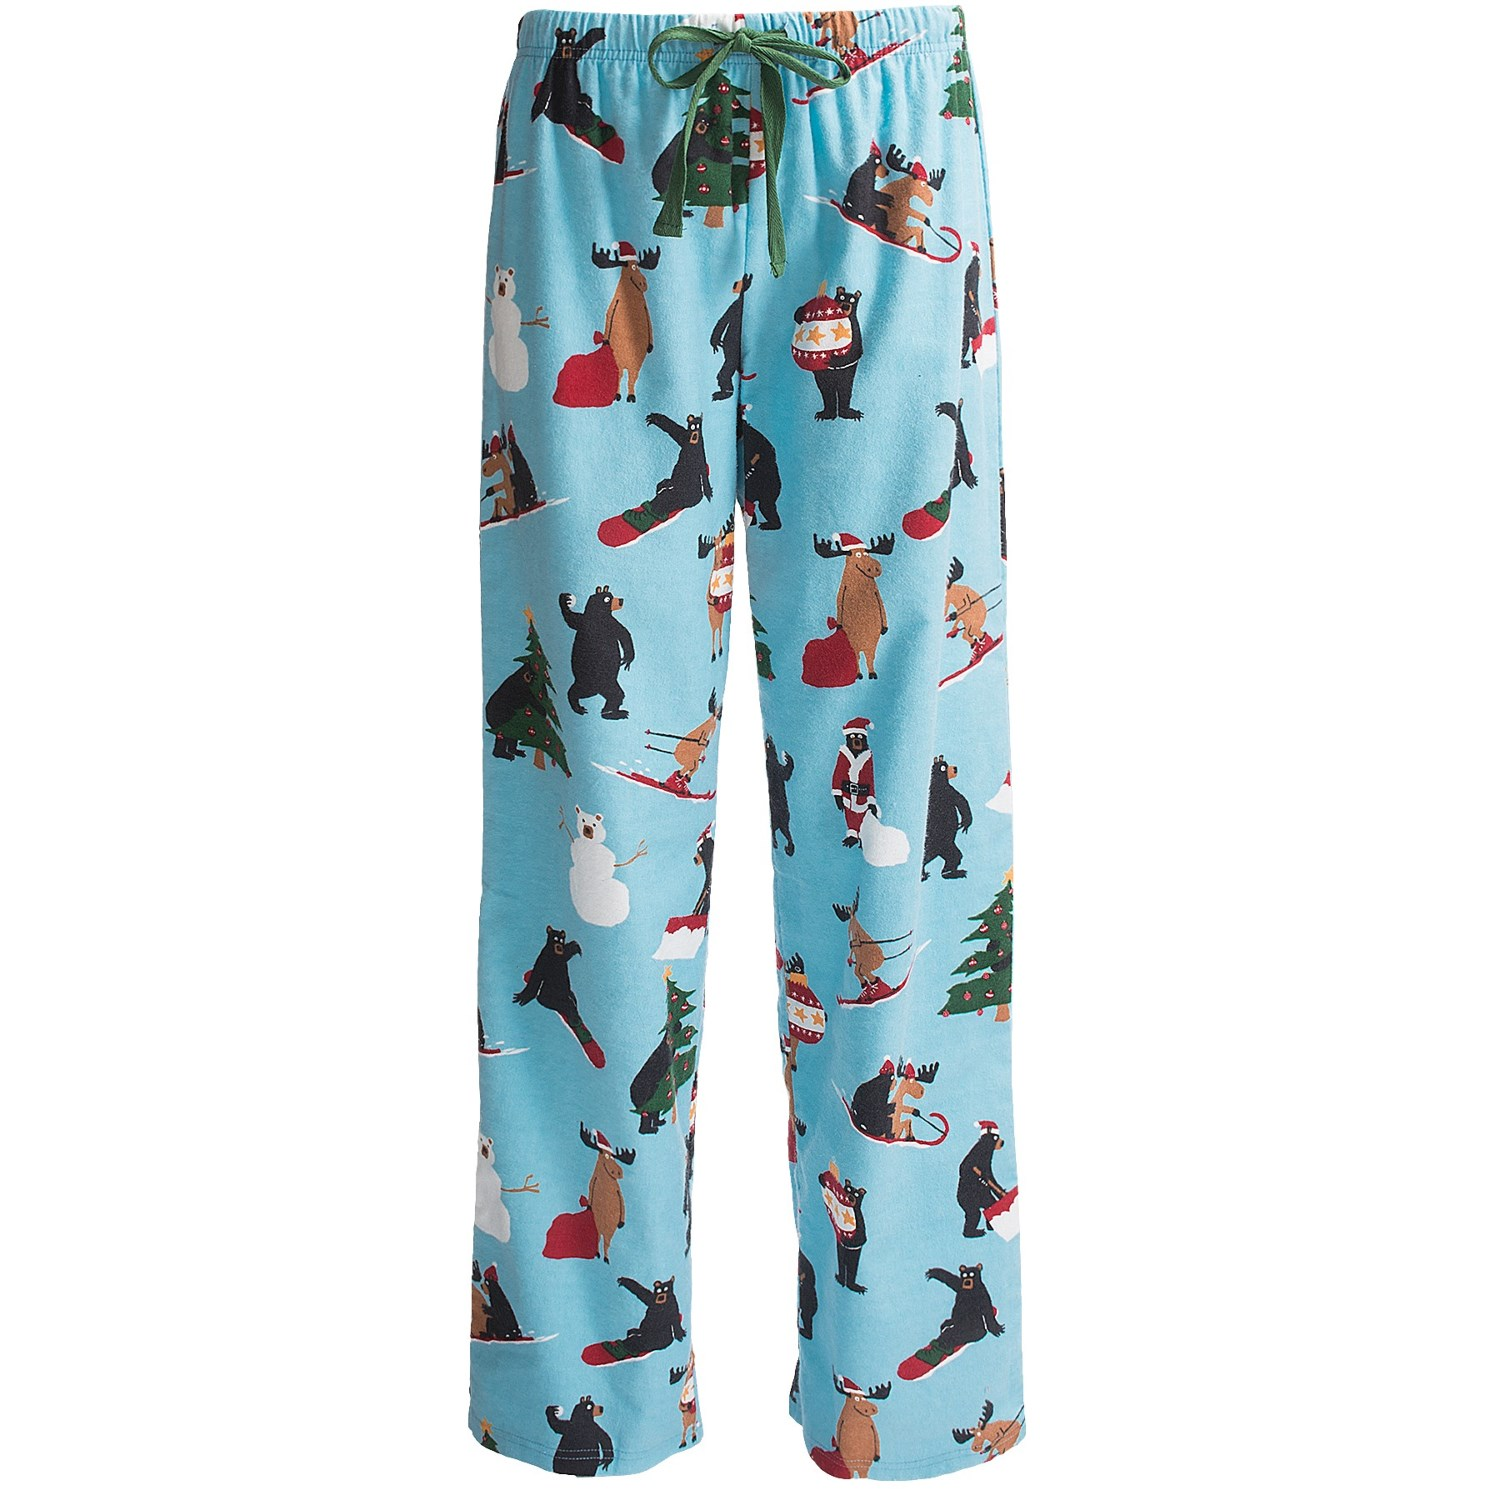 Excellent Kensie Pajamas Top And Fleece Pajama Pants Set  Womens Pajama Sets